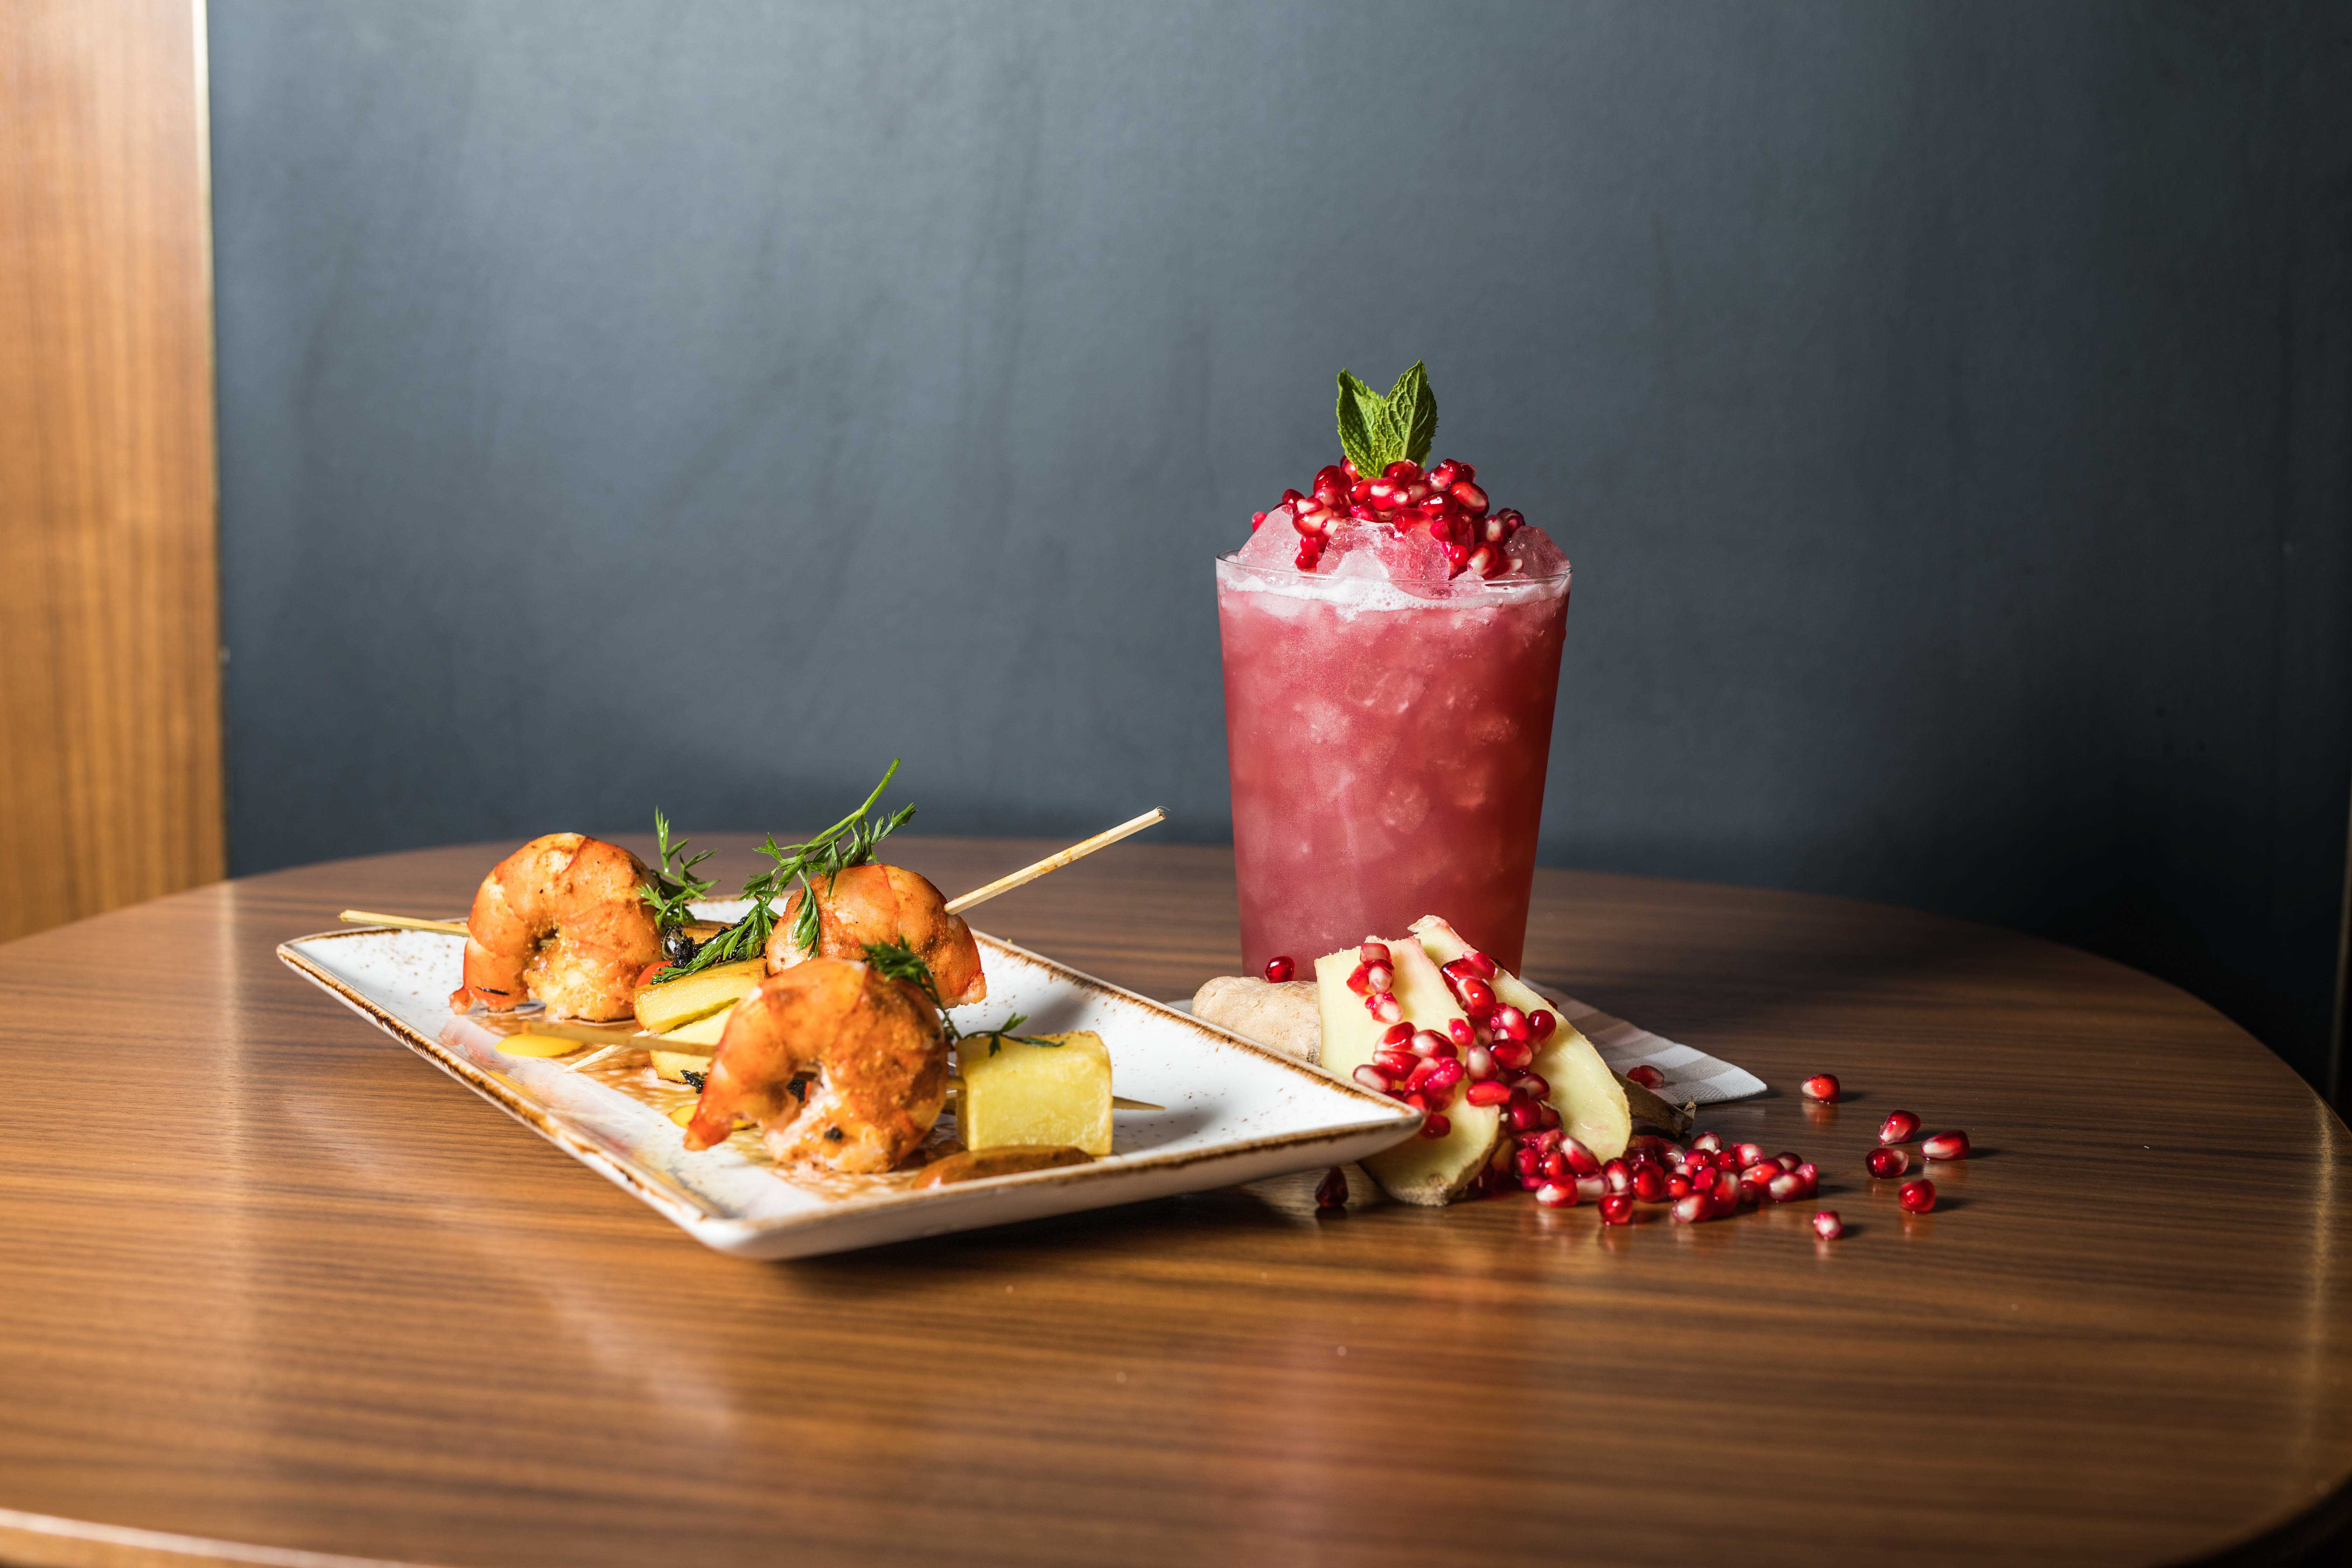 Shrimps and Fruit Punch